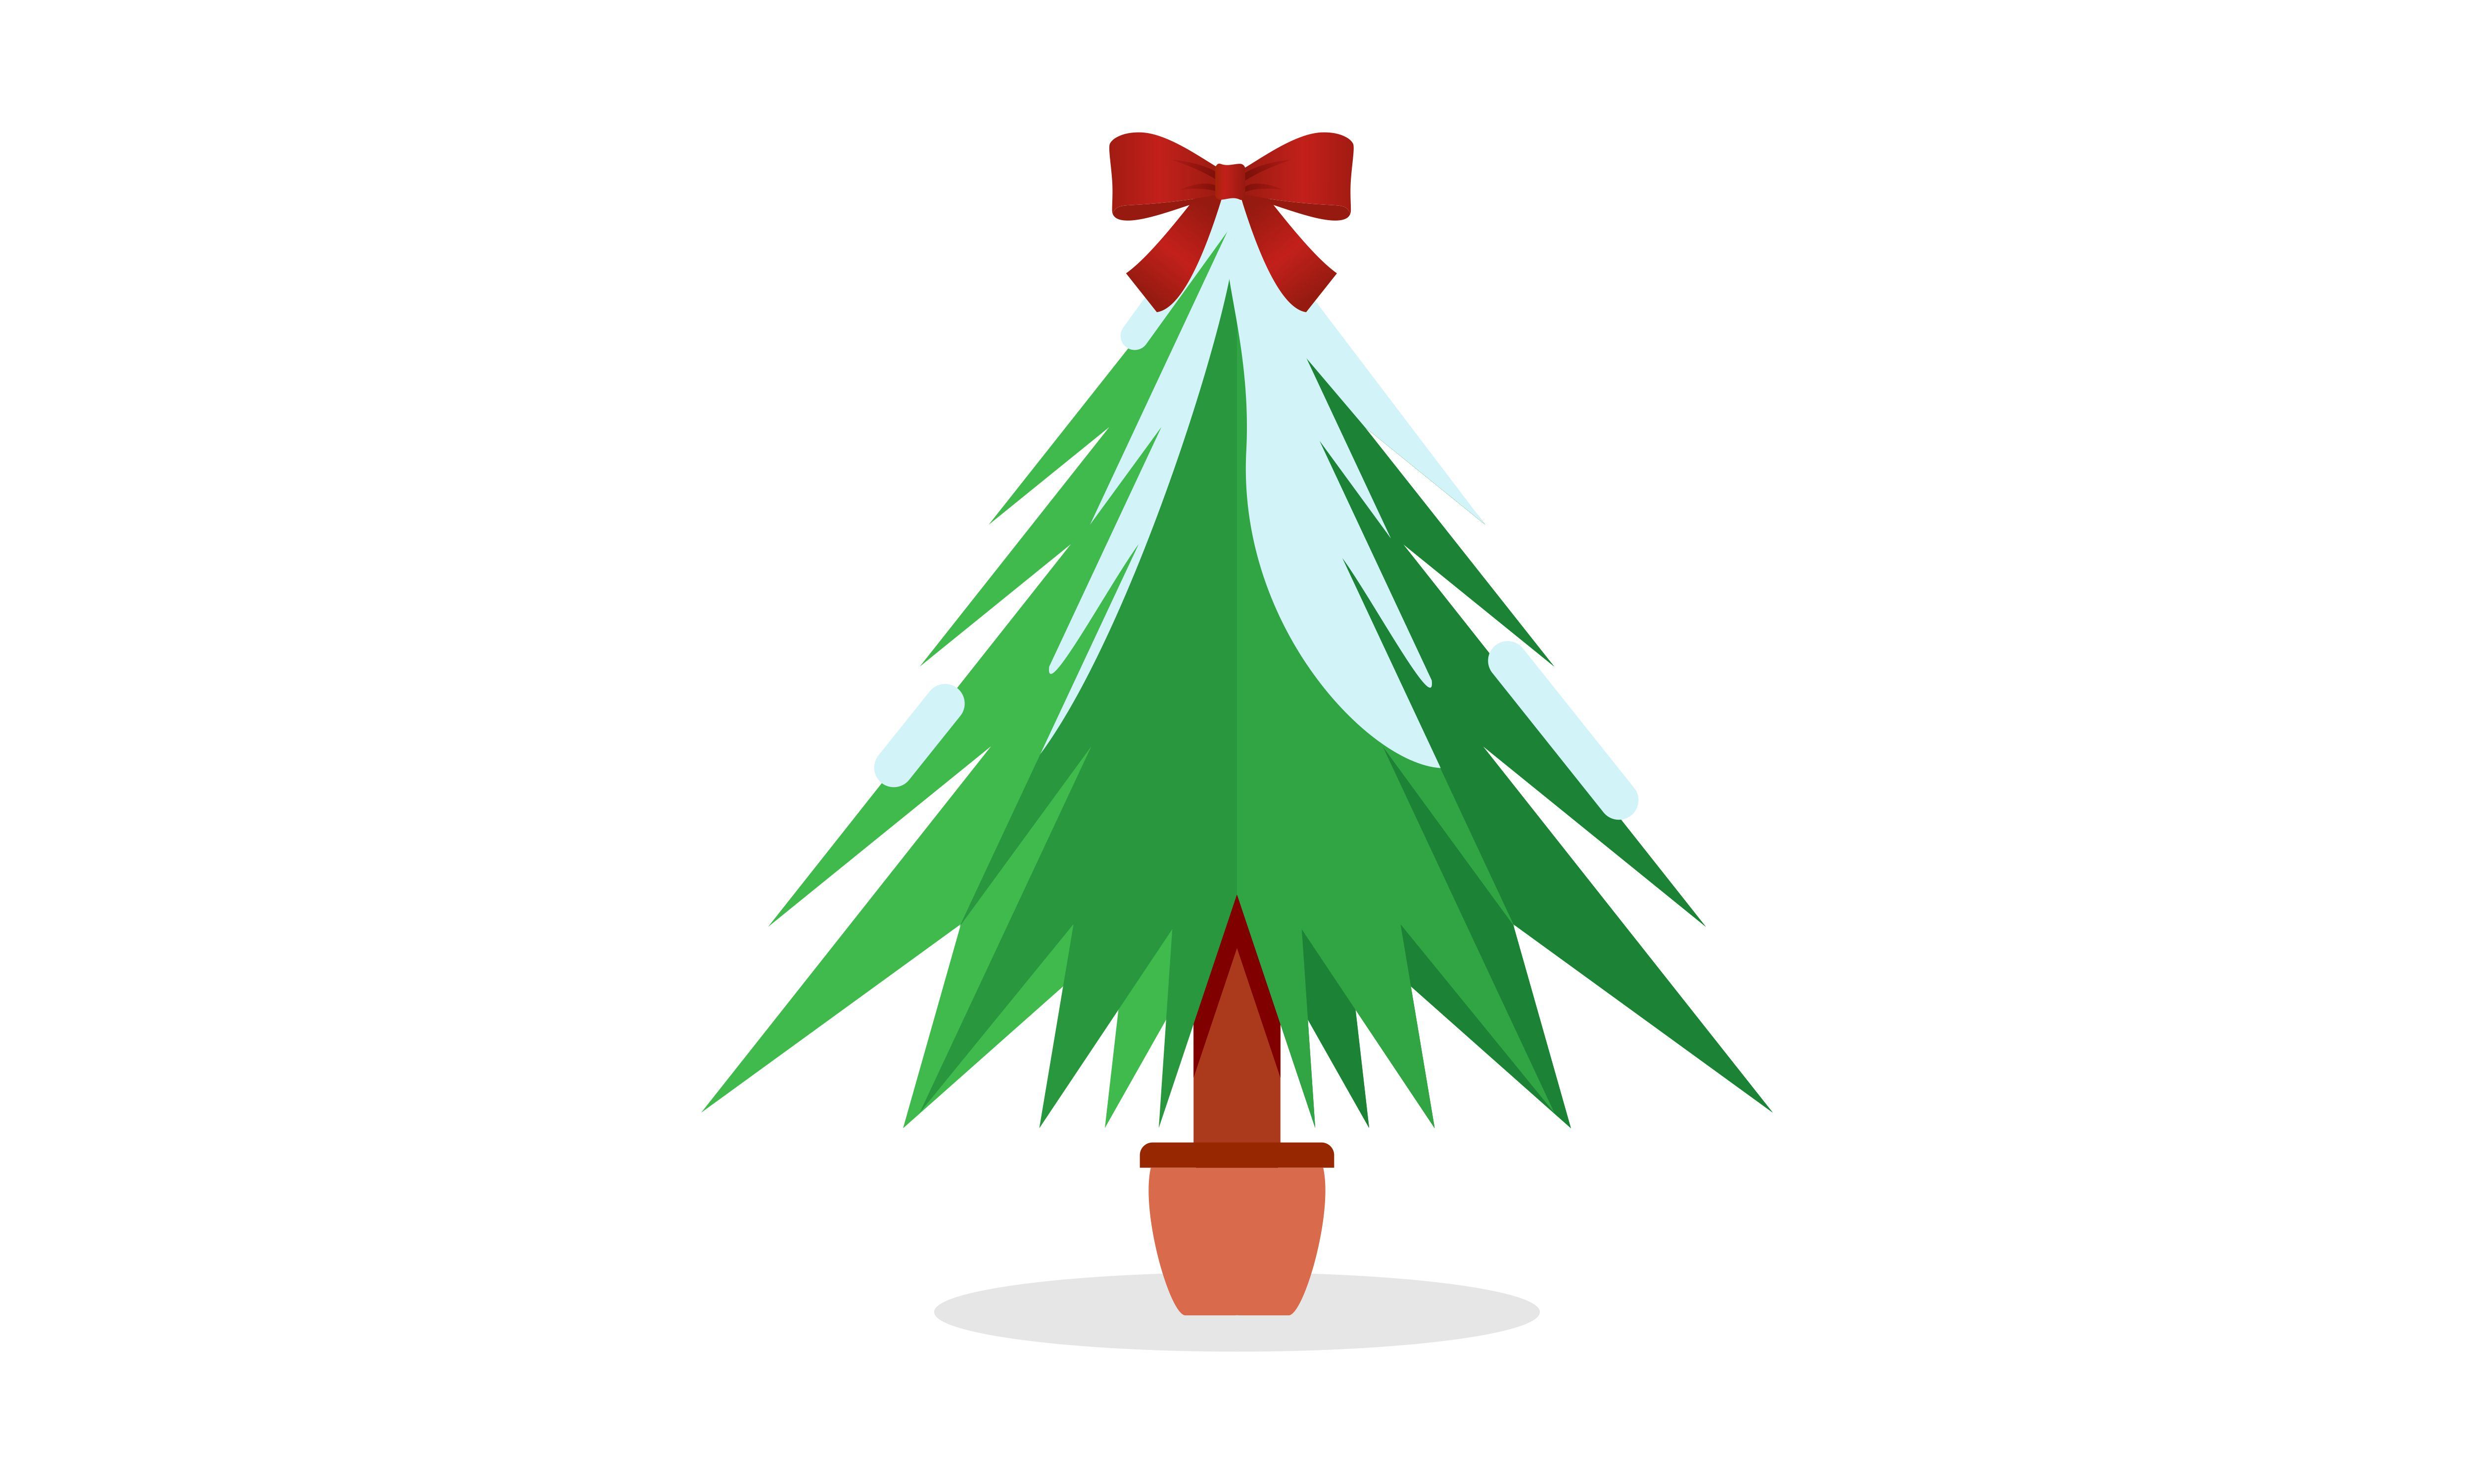 Download Free Christmas Tree Silhouette With Logo Graphic By Deemka Studio for Cricut Explore, Silhouette and other cutting machines.